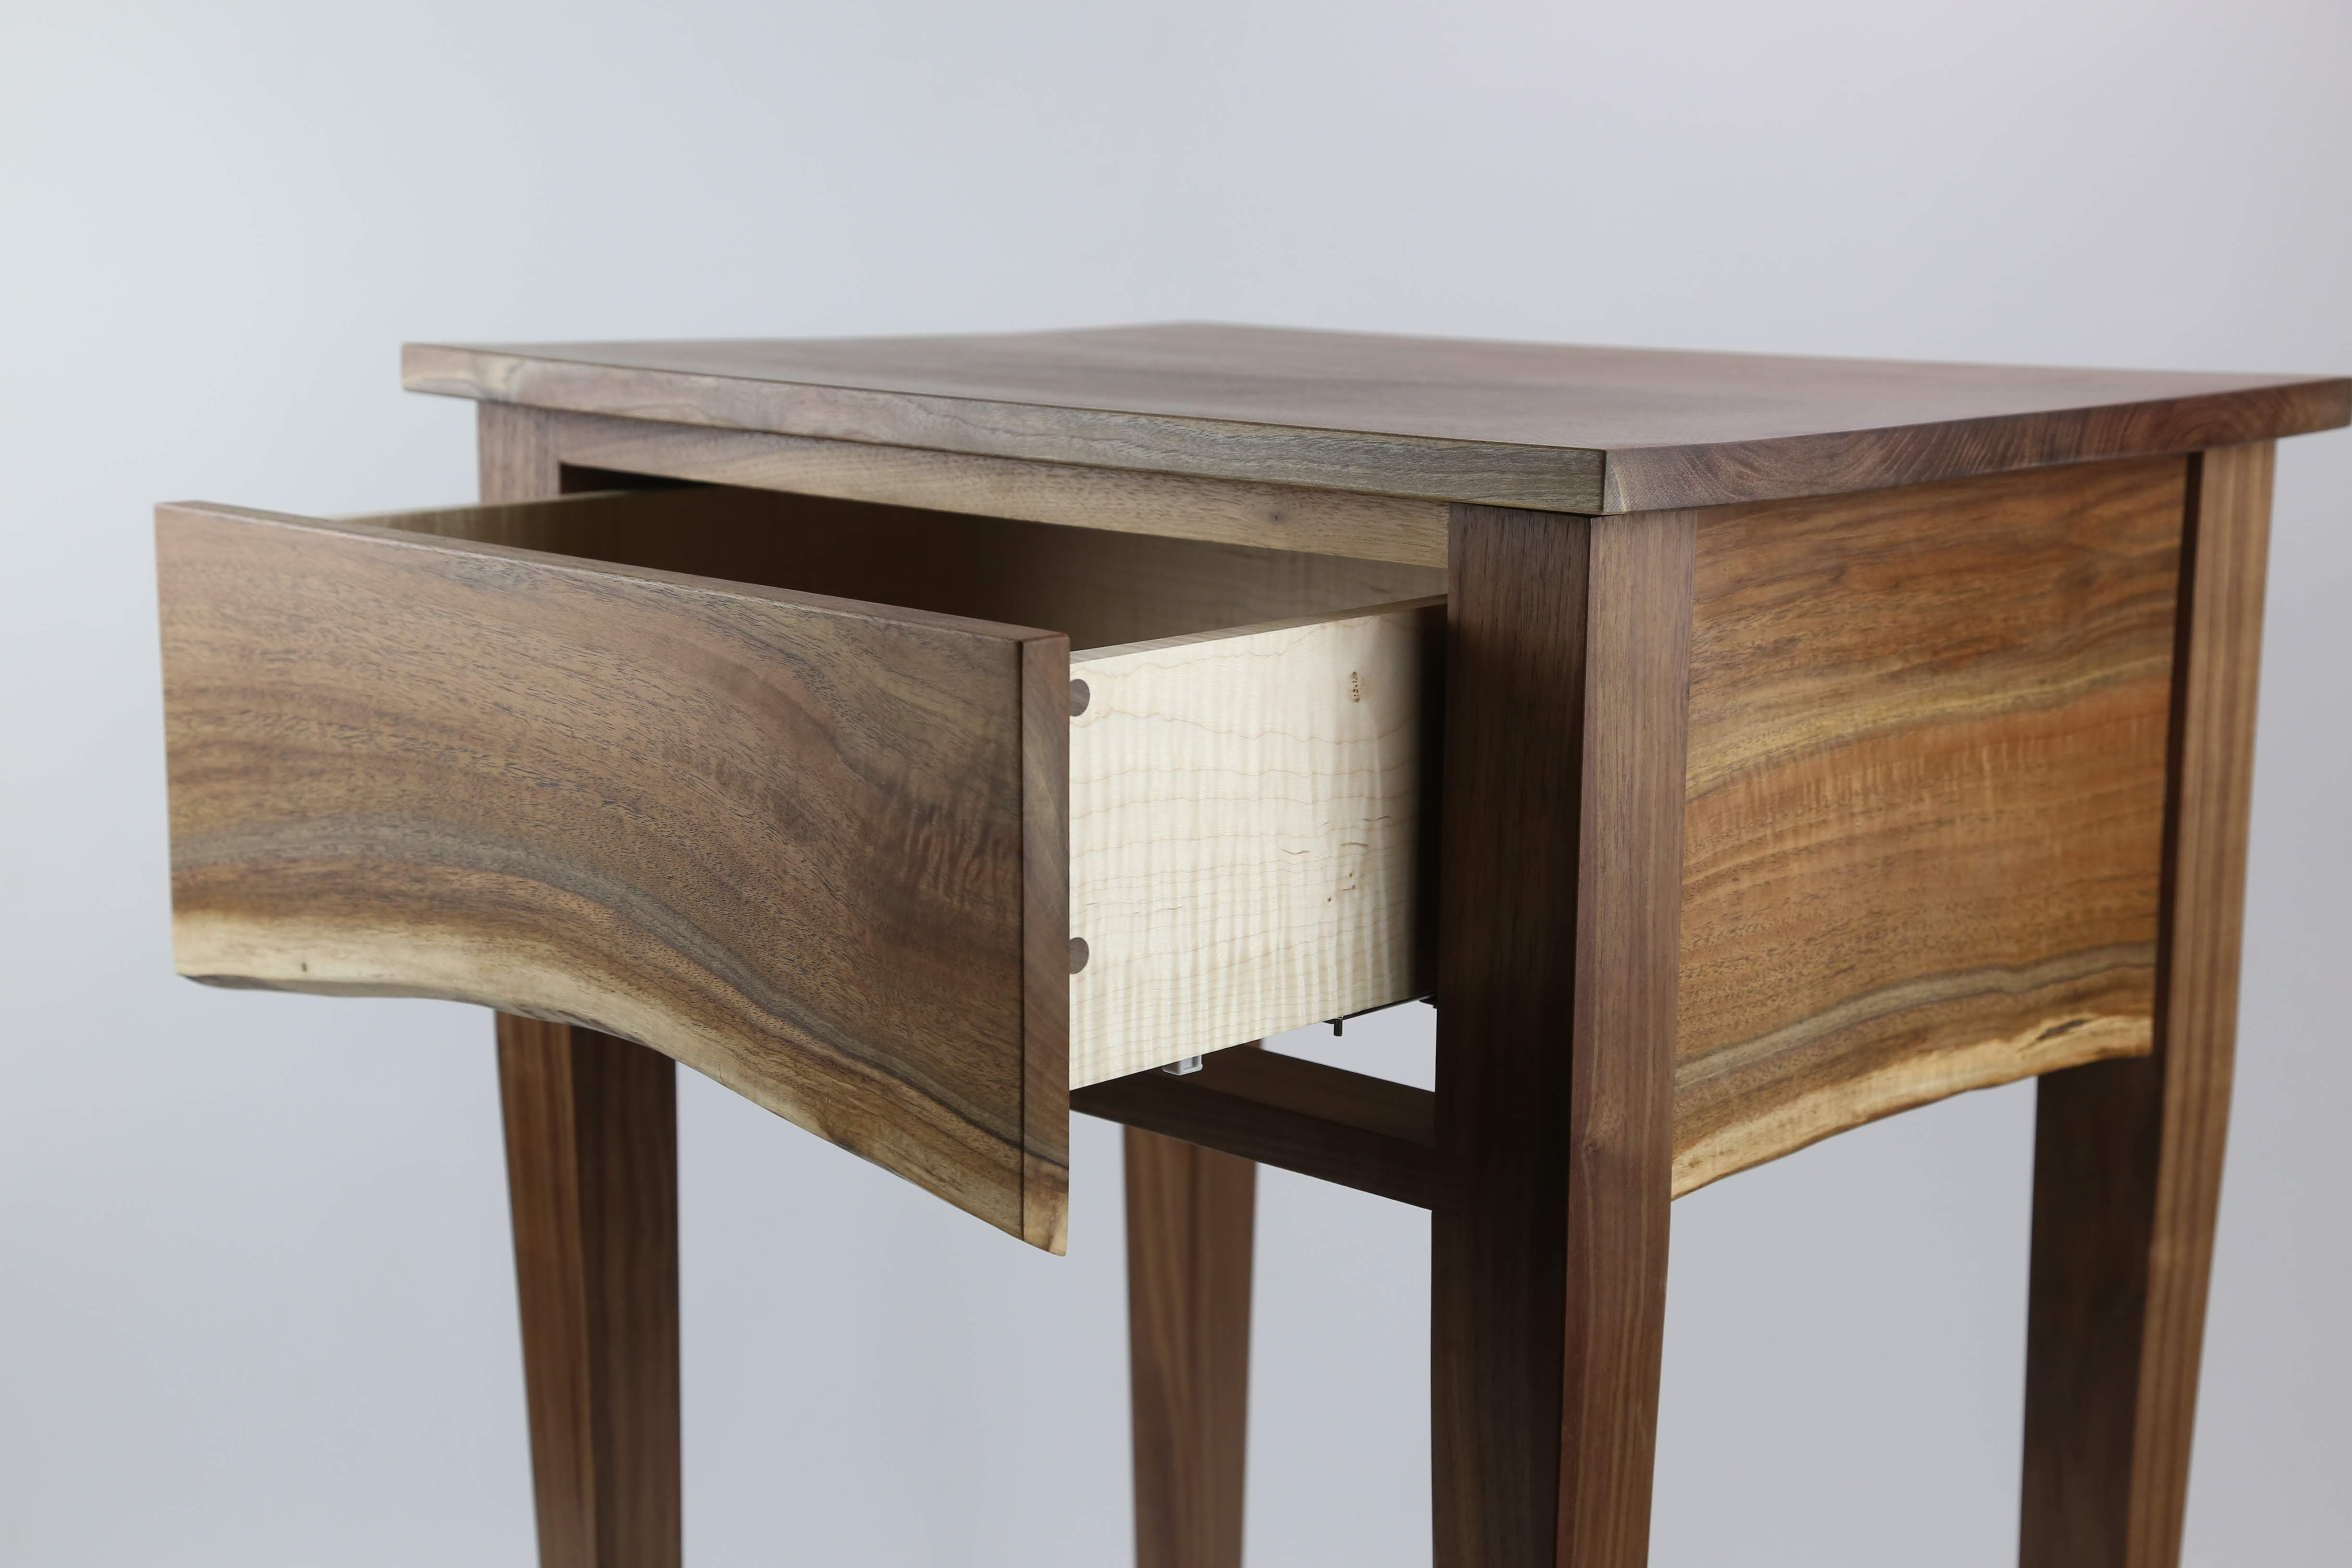 2019 Woodworking Contest Show Living Room Art Woodworkers